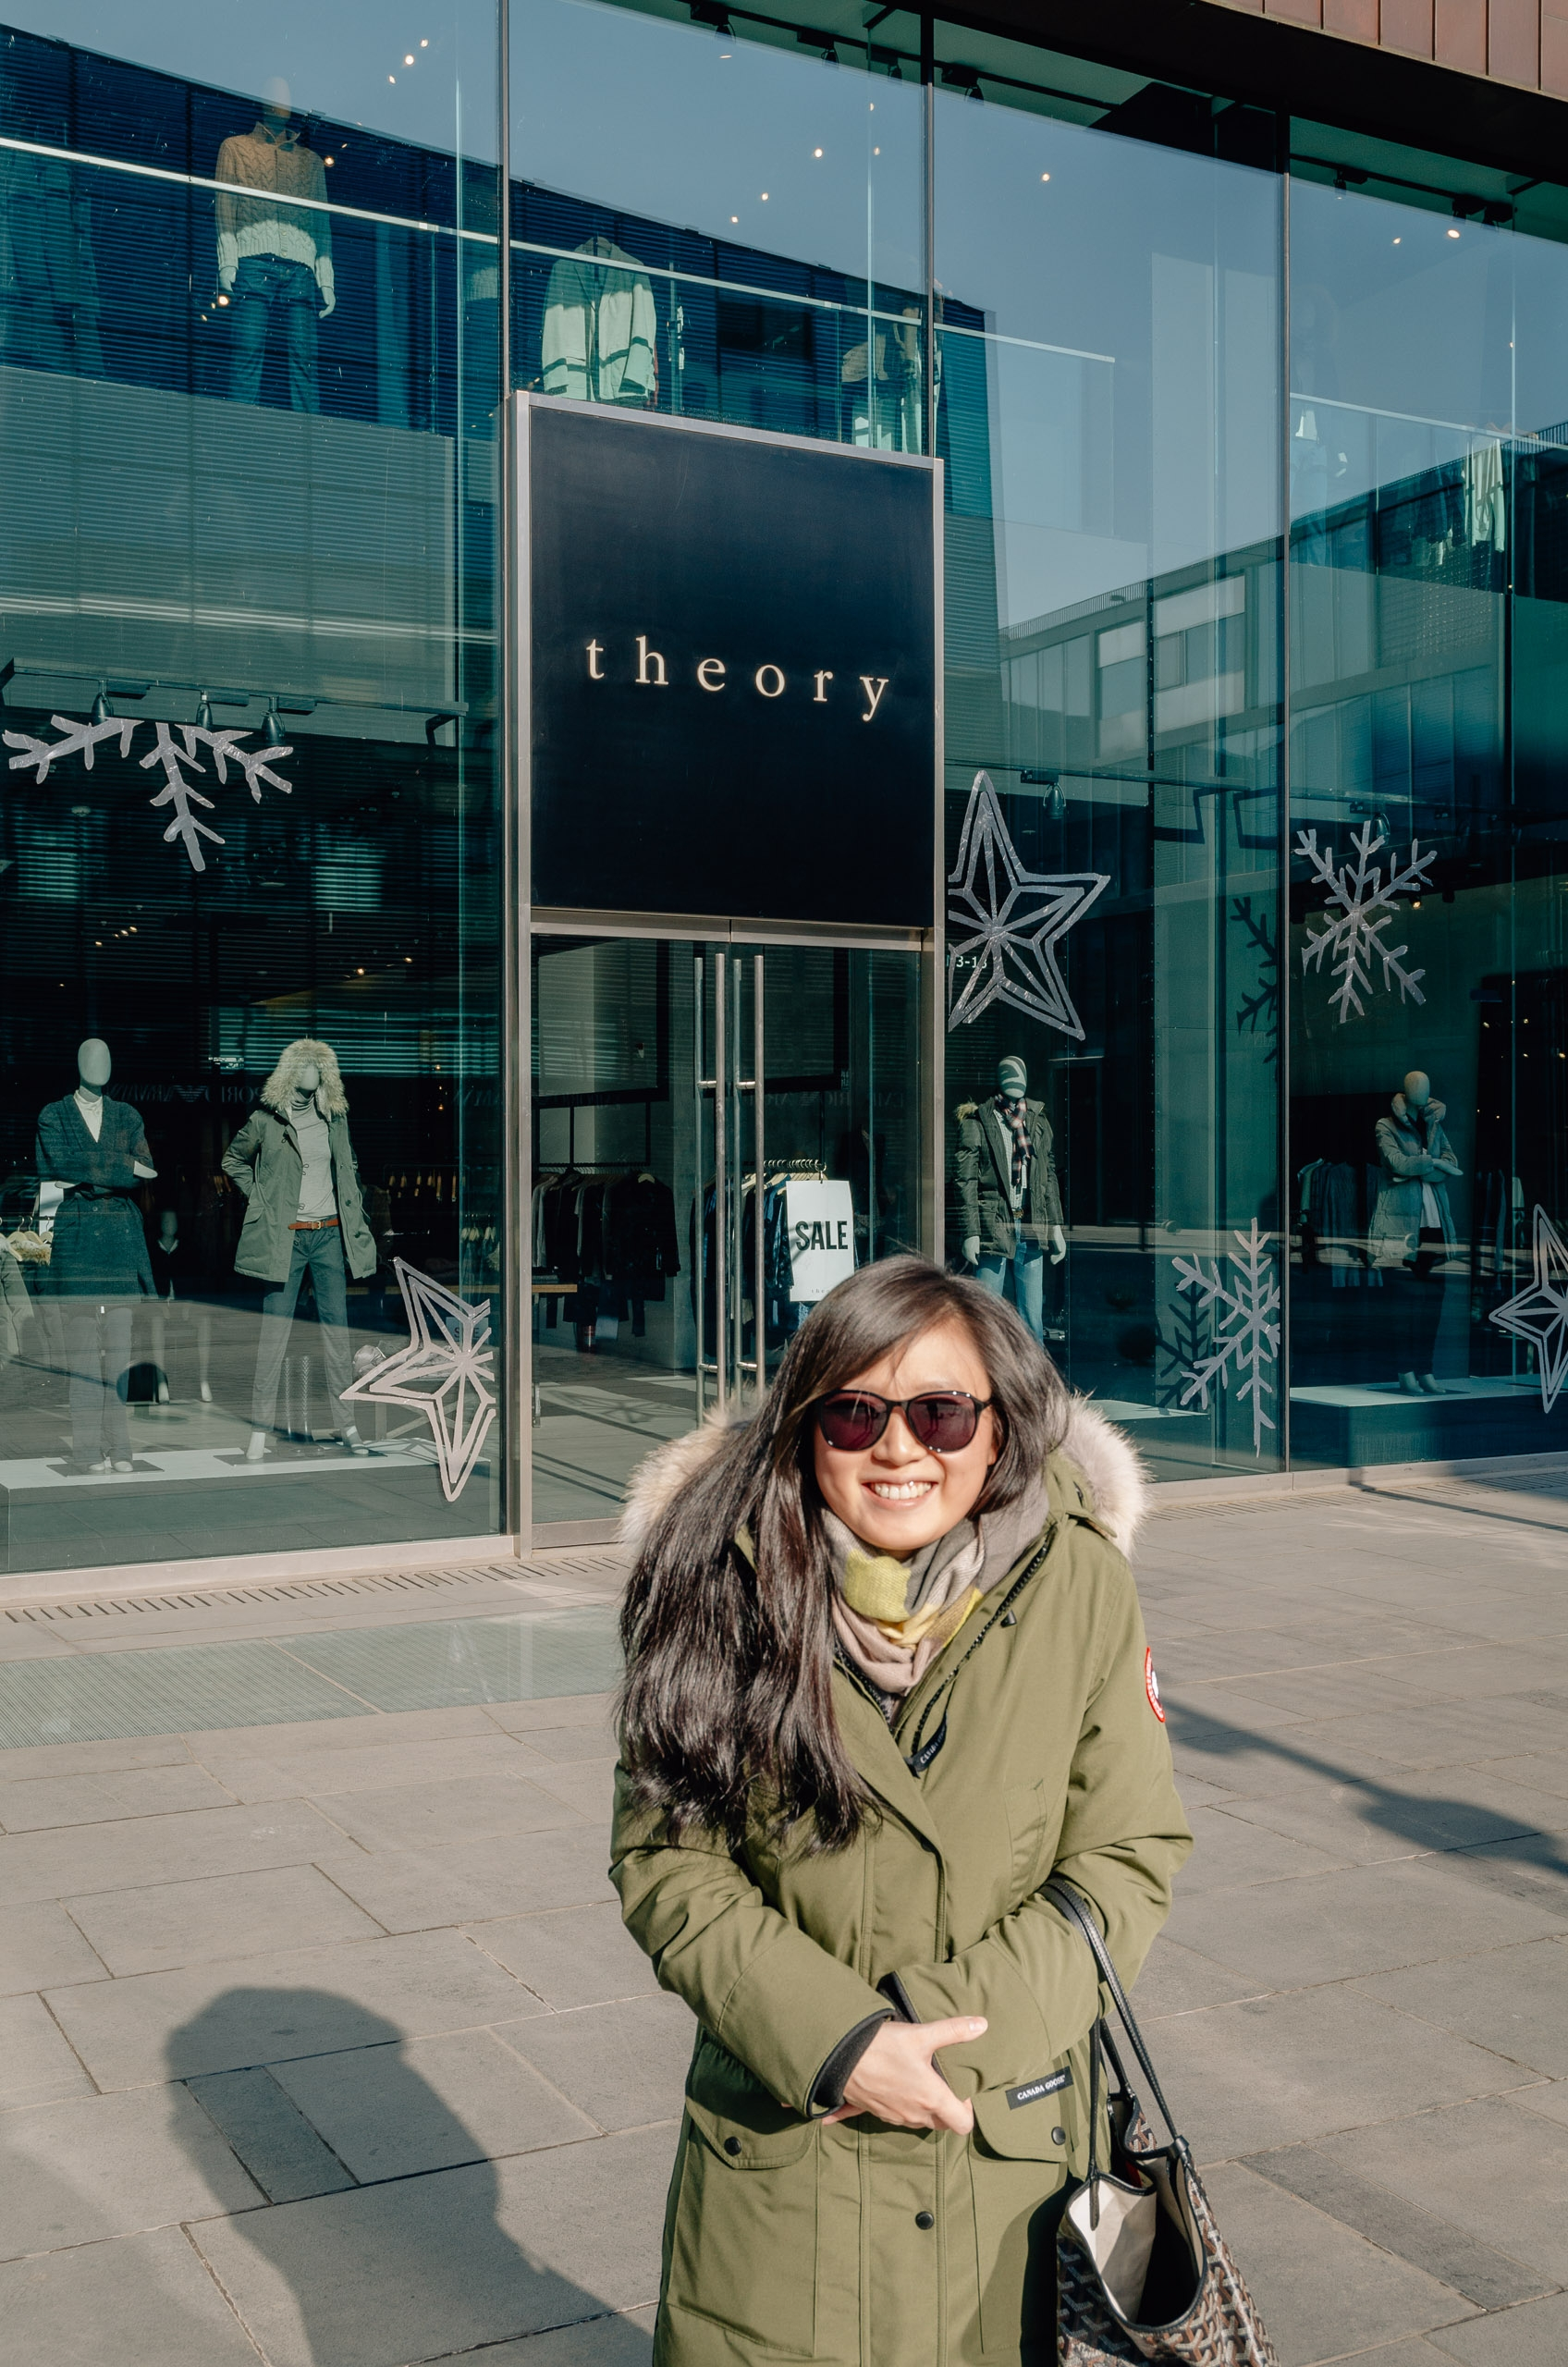 A Theory Store in China